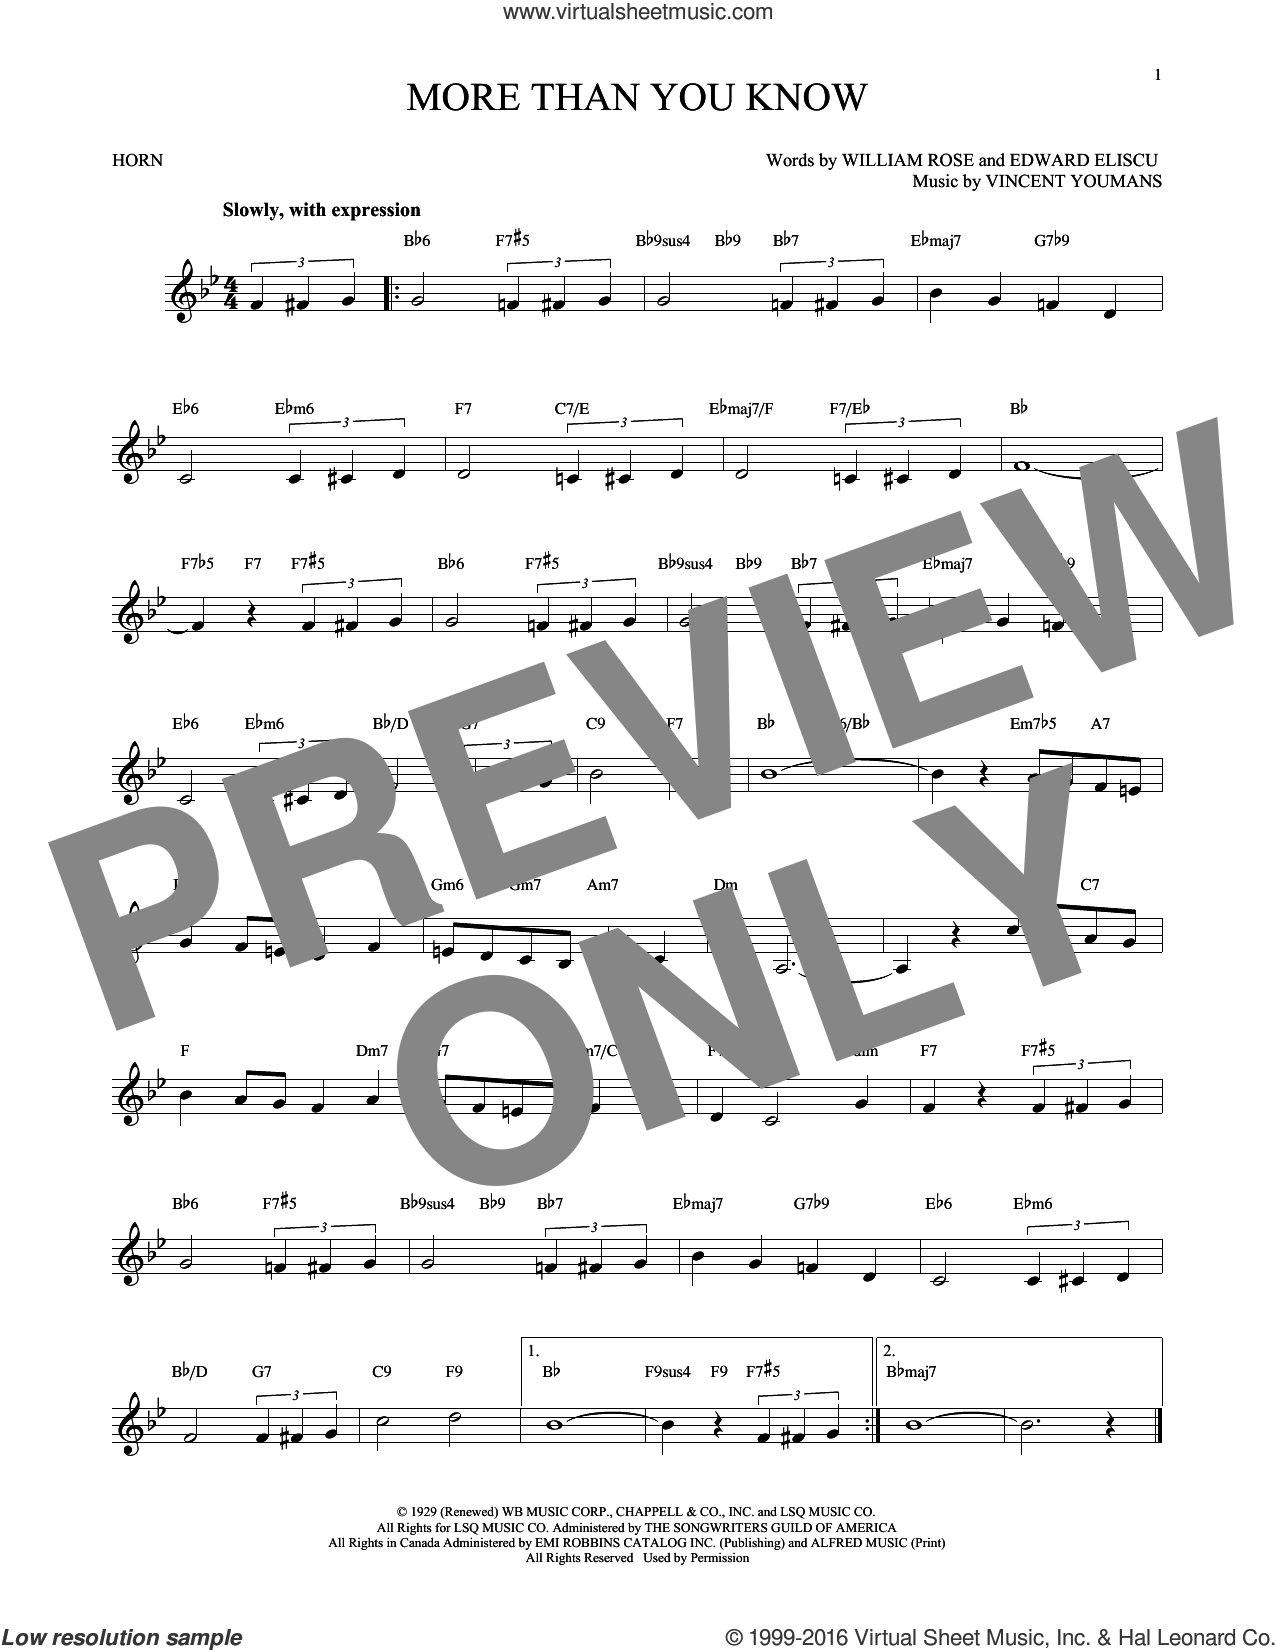 More Than You Know sheet music for horn solo by Edward Eliscu, Vincent Youmans and William Rose. Score Image Preview.